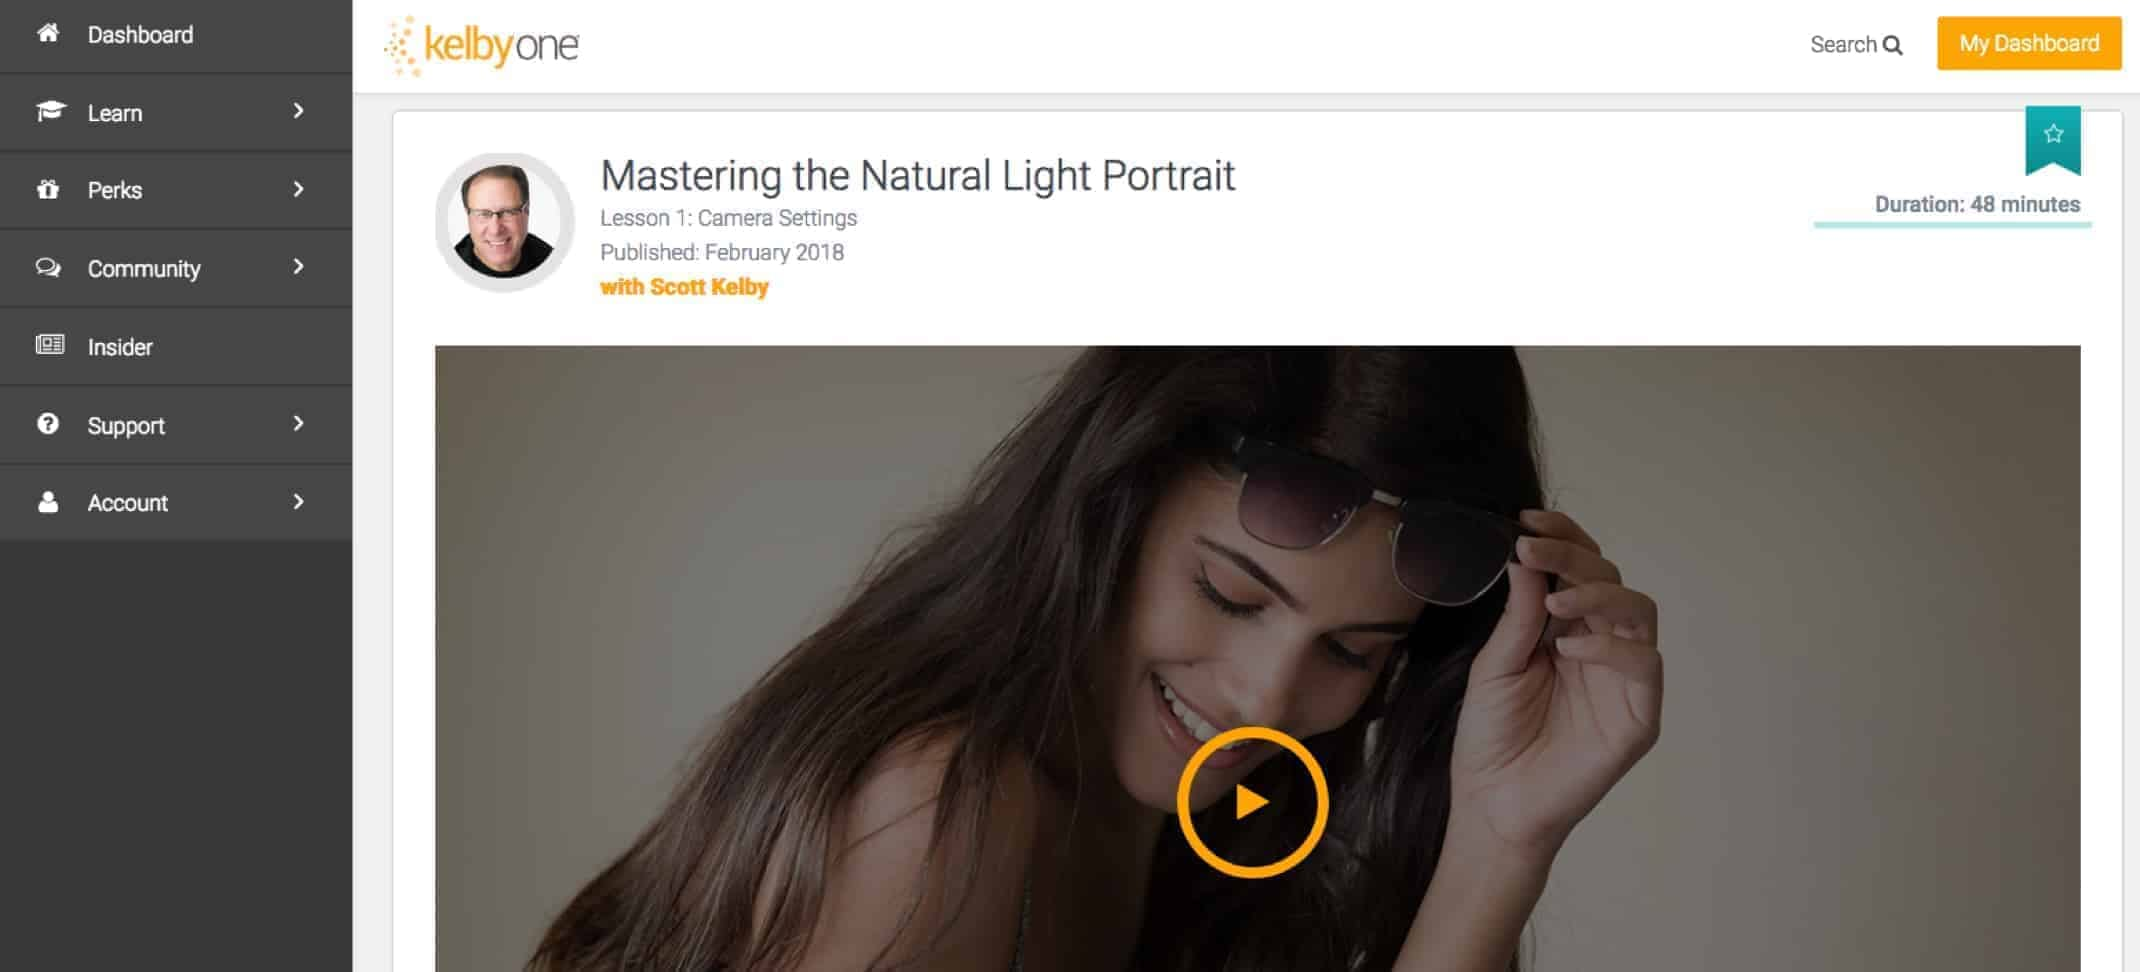 Best Photography Classes Online (3 Amazing Picks in 2019)